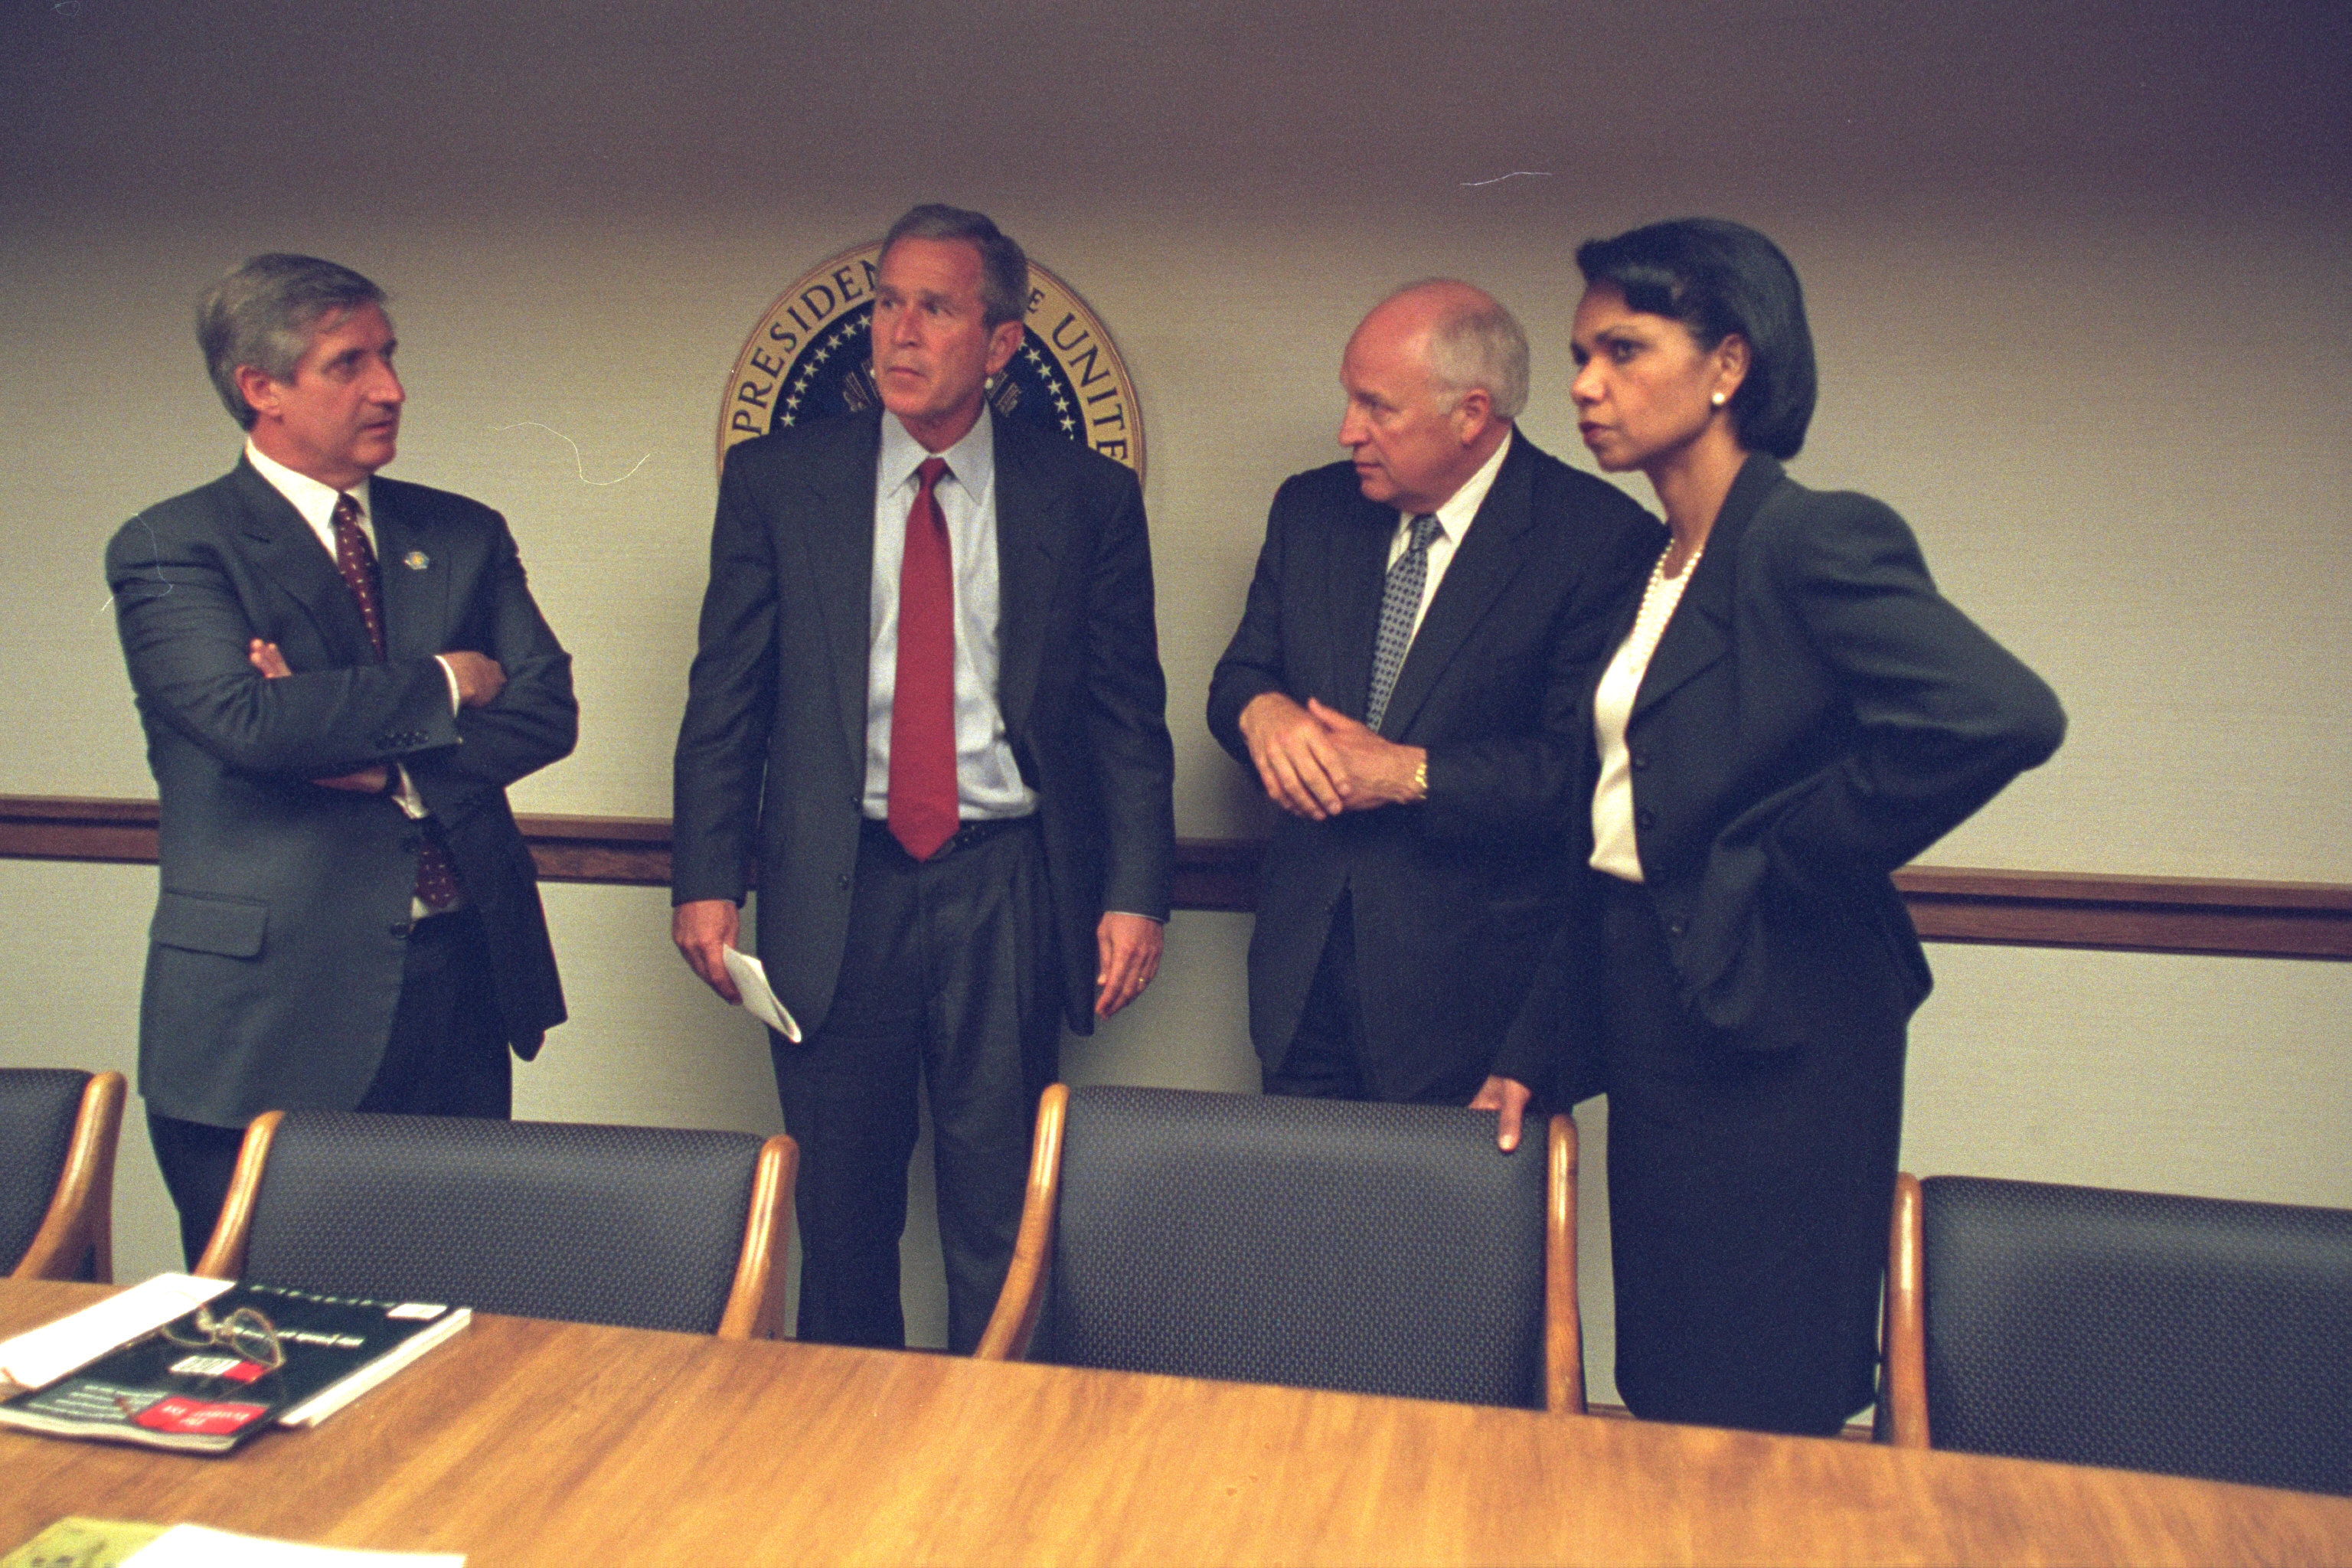 President George Bush is briefed on the situation after arriving at the White House.